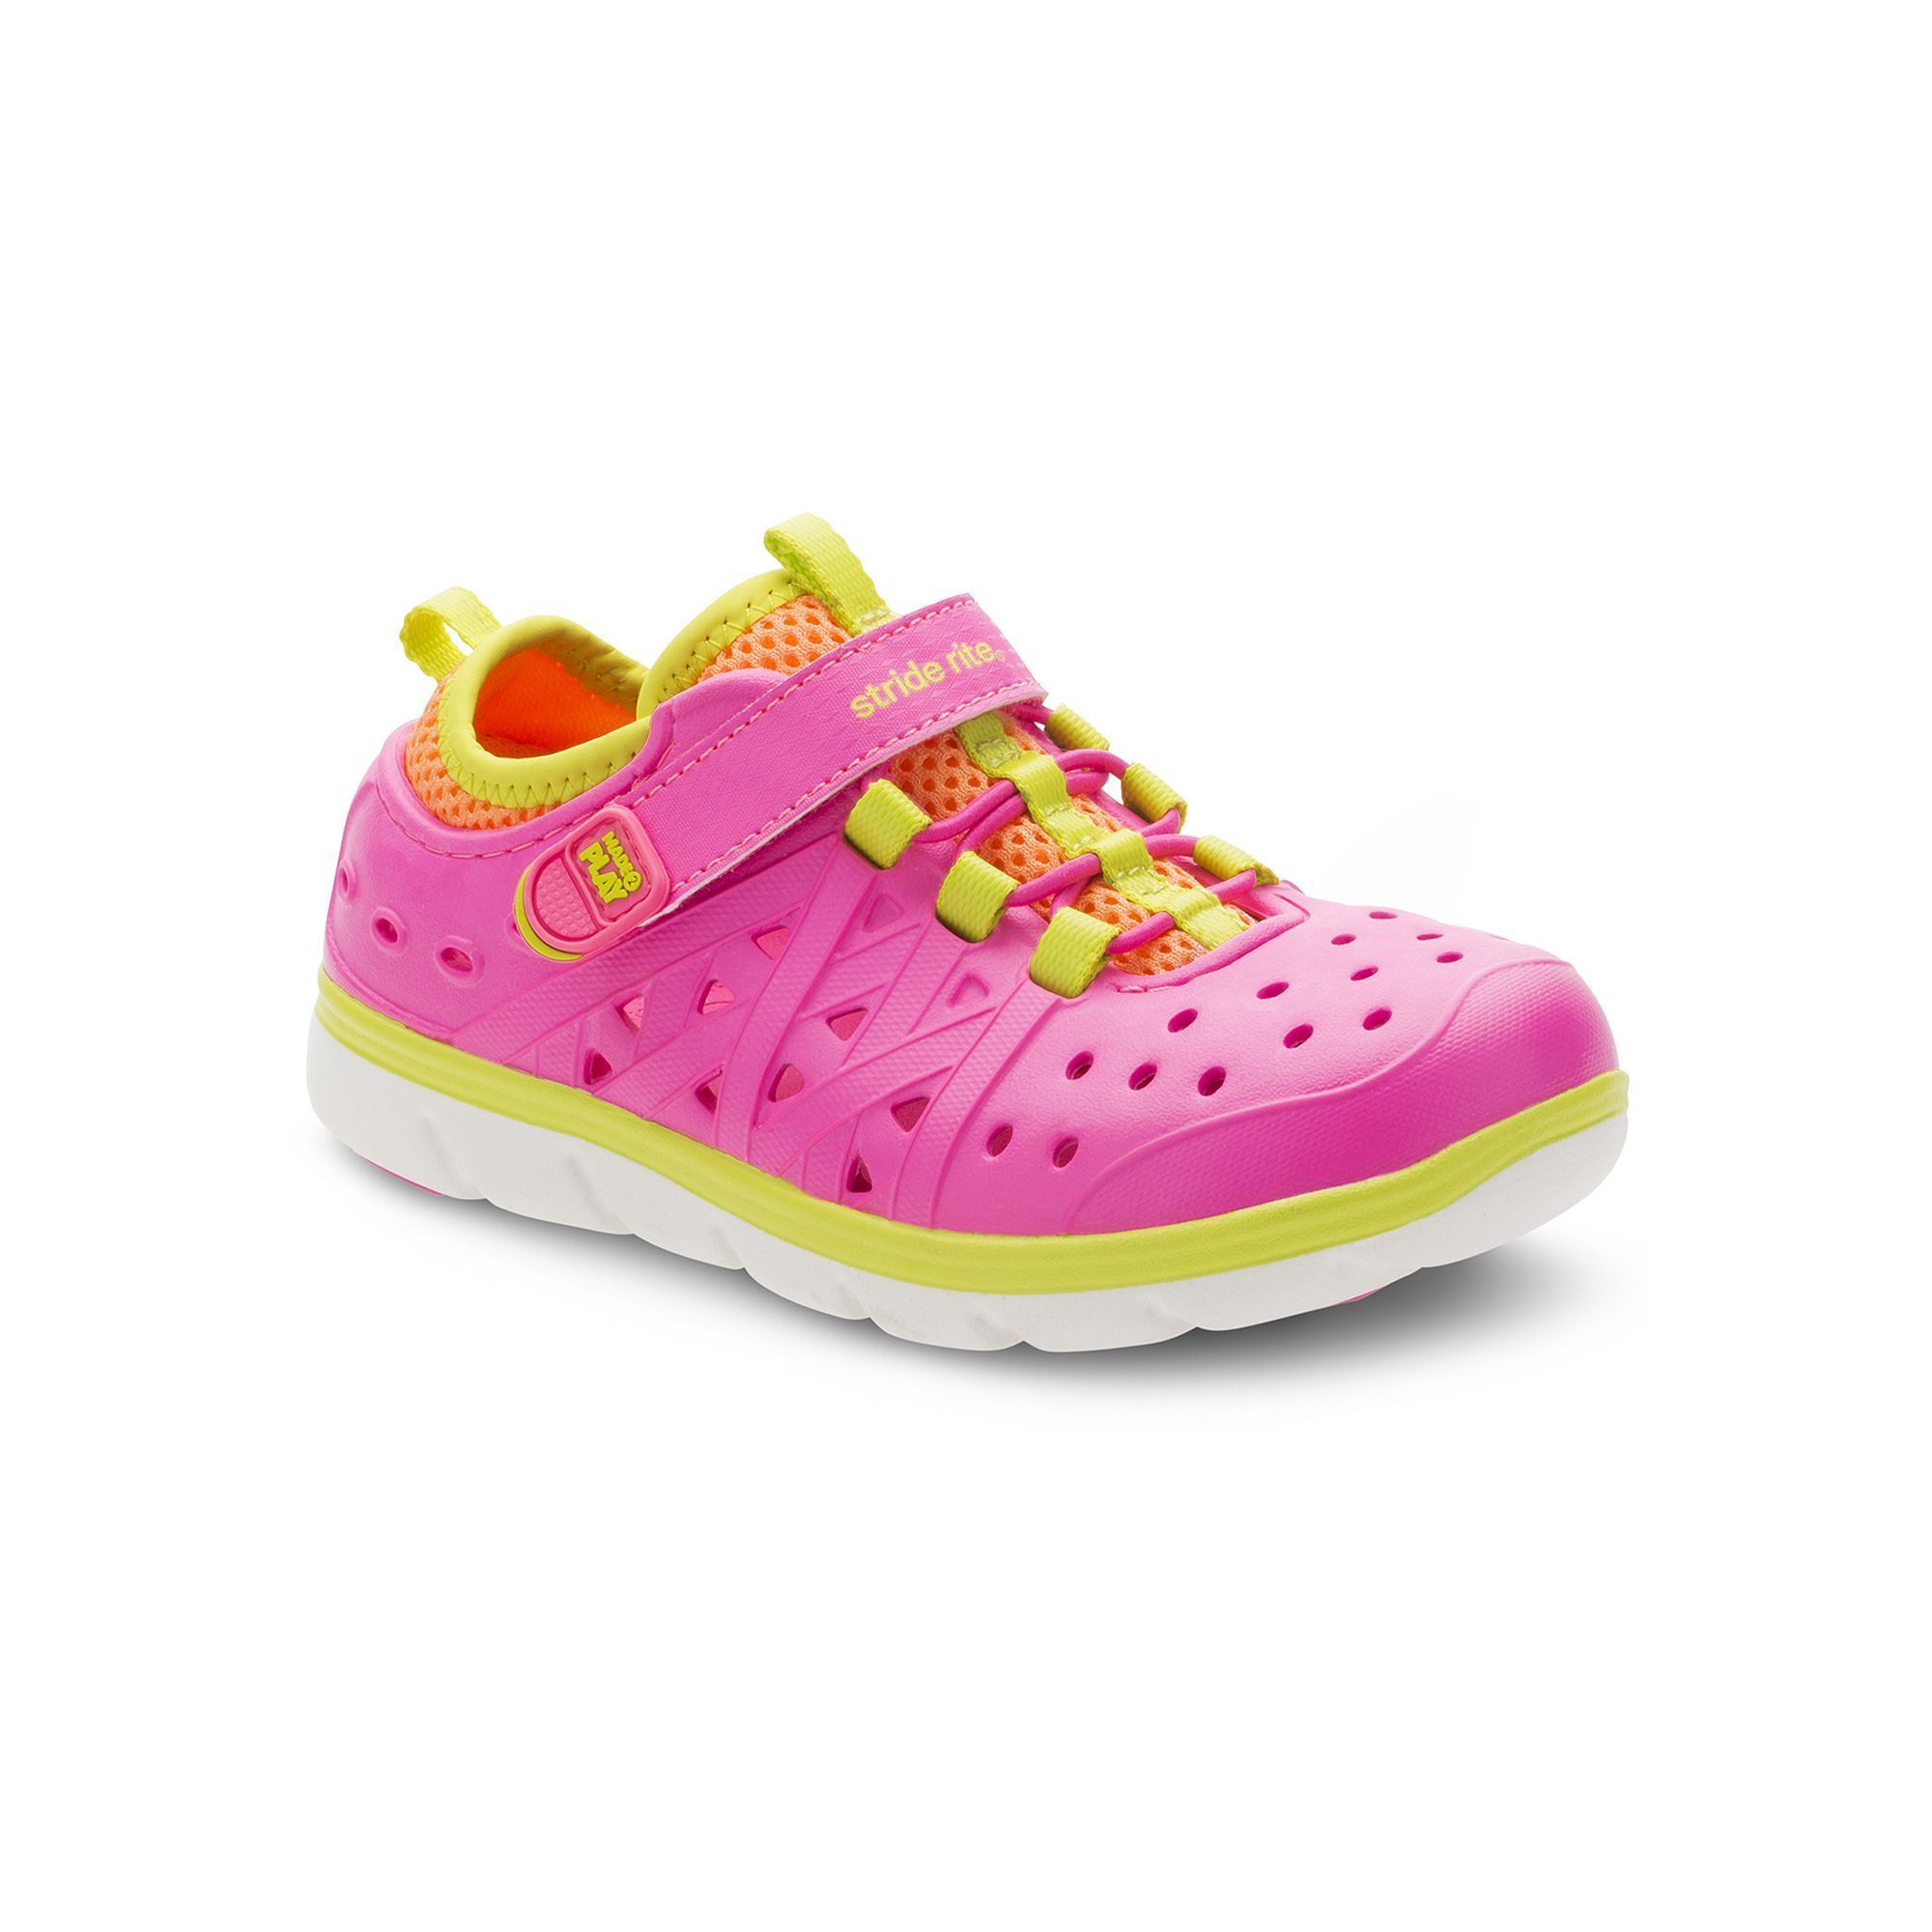 Stride Rite Made 2 Play Phibian Girls Water Shoes Size 11 Light